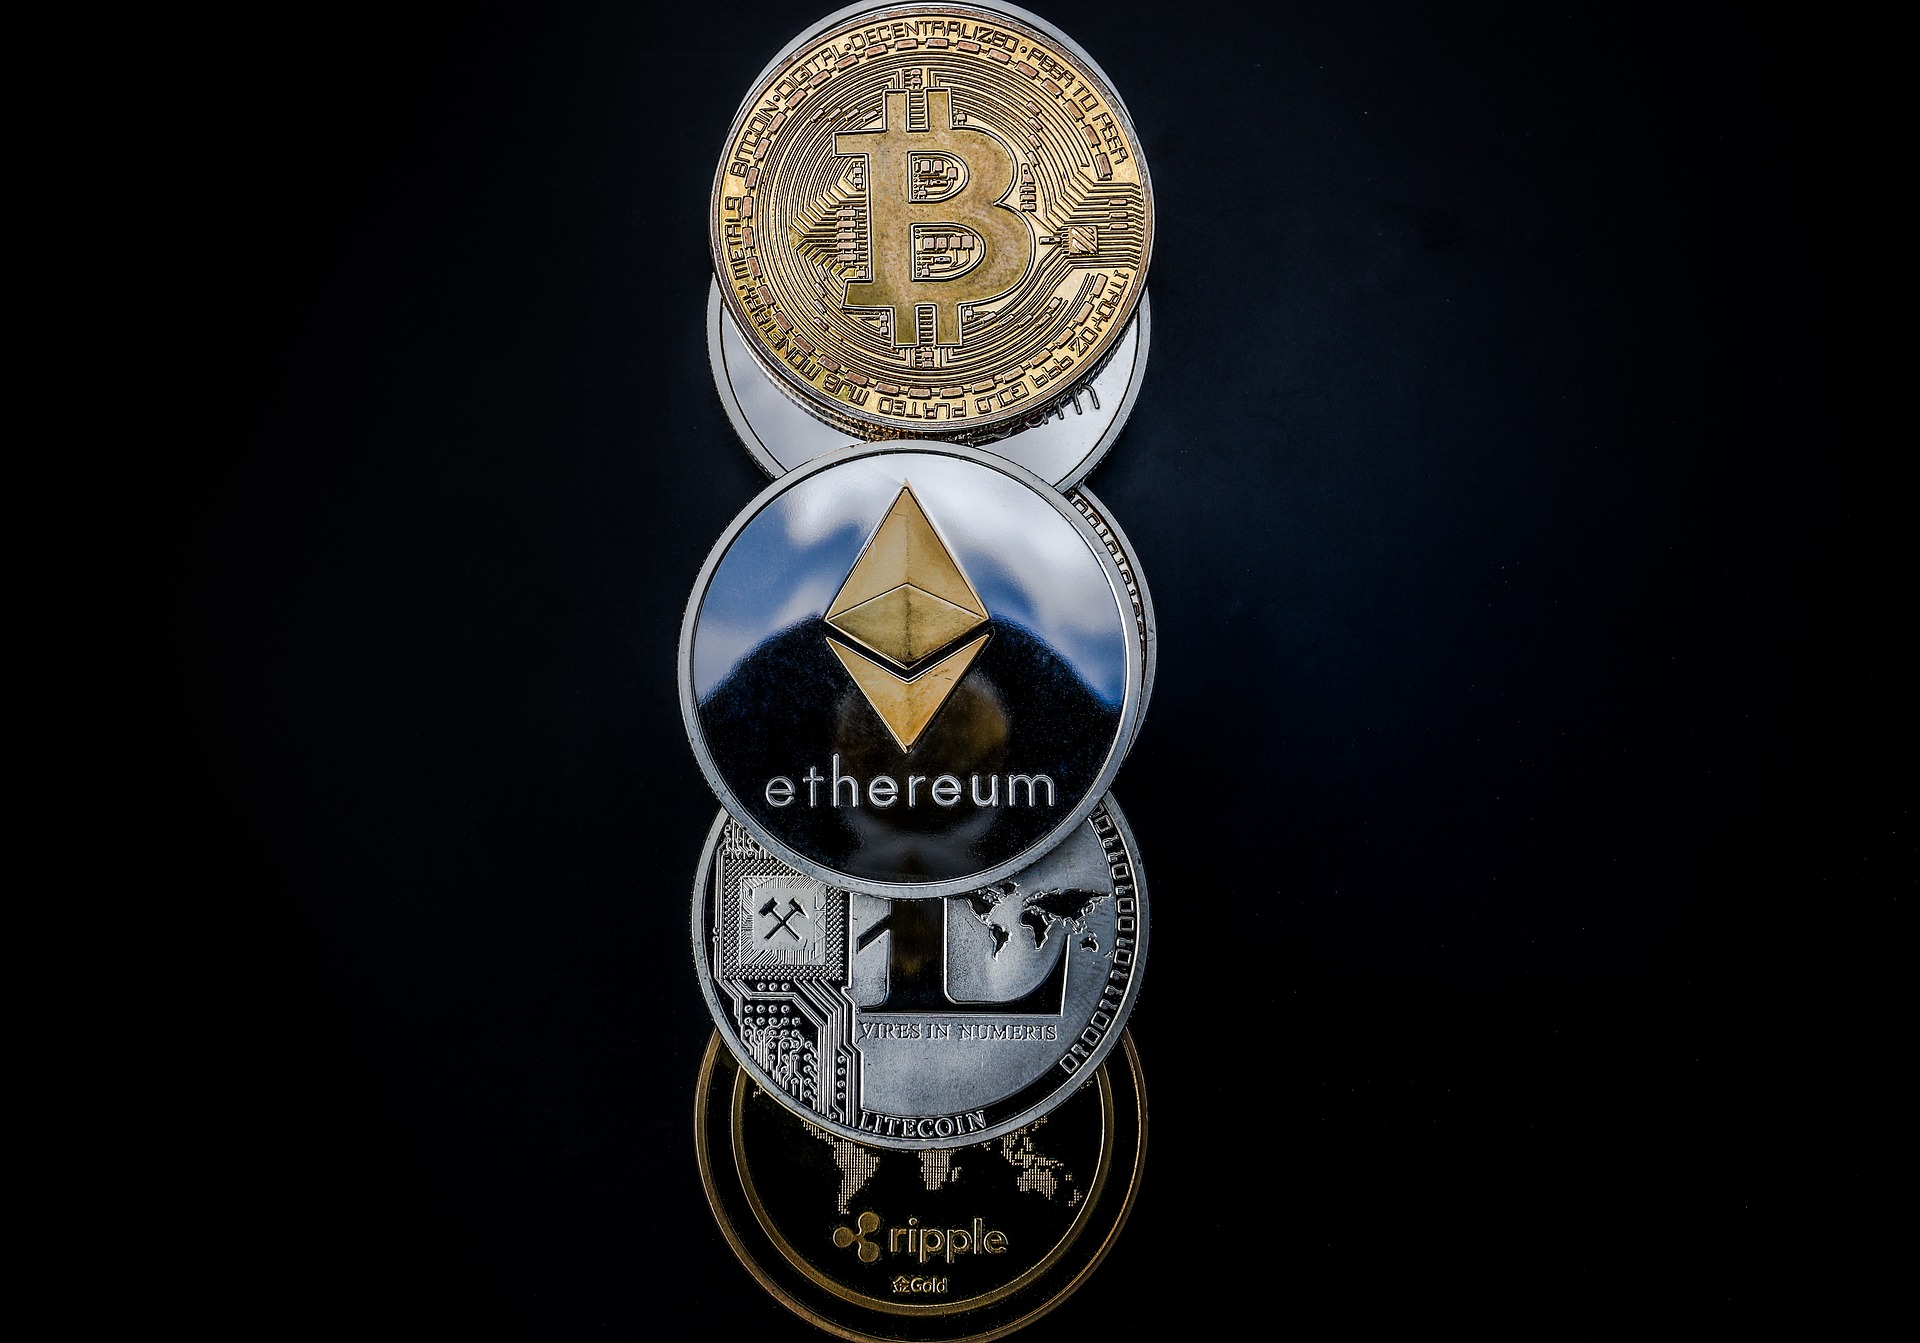 FM's Stance on Cryptocurrency Trading Norms brings cheer to the Industry